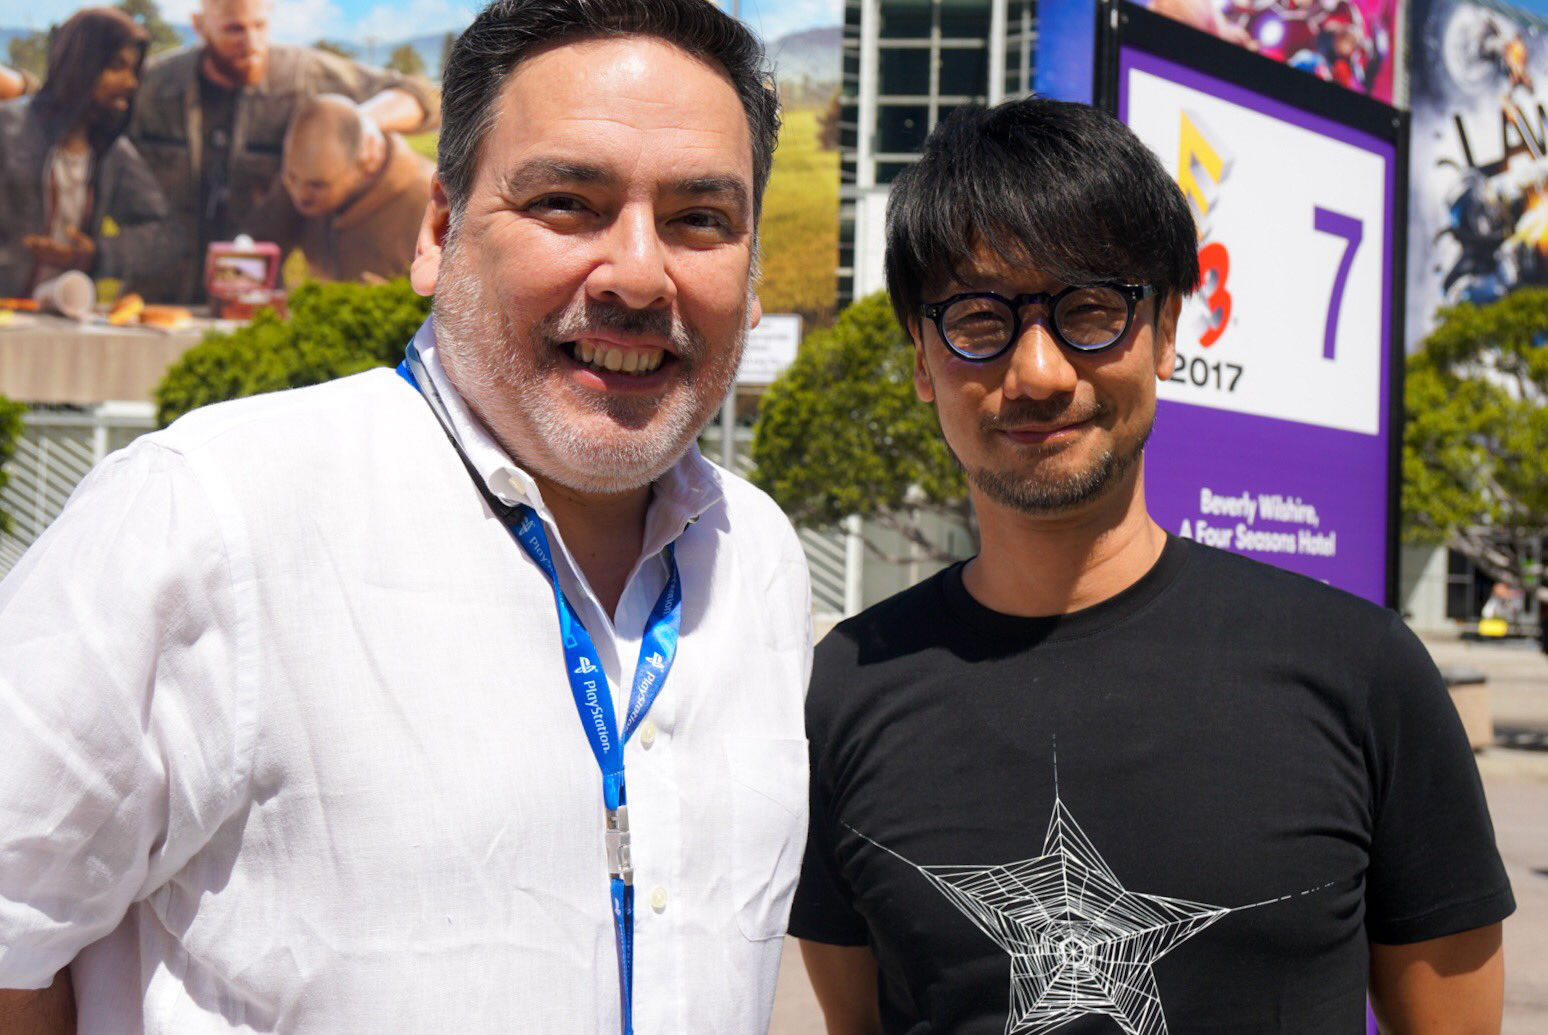 Shawn Layden et Hideo Kojima devant le Convention Center de Los Angeles, le 12 juin 2017